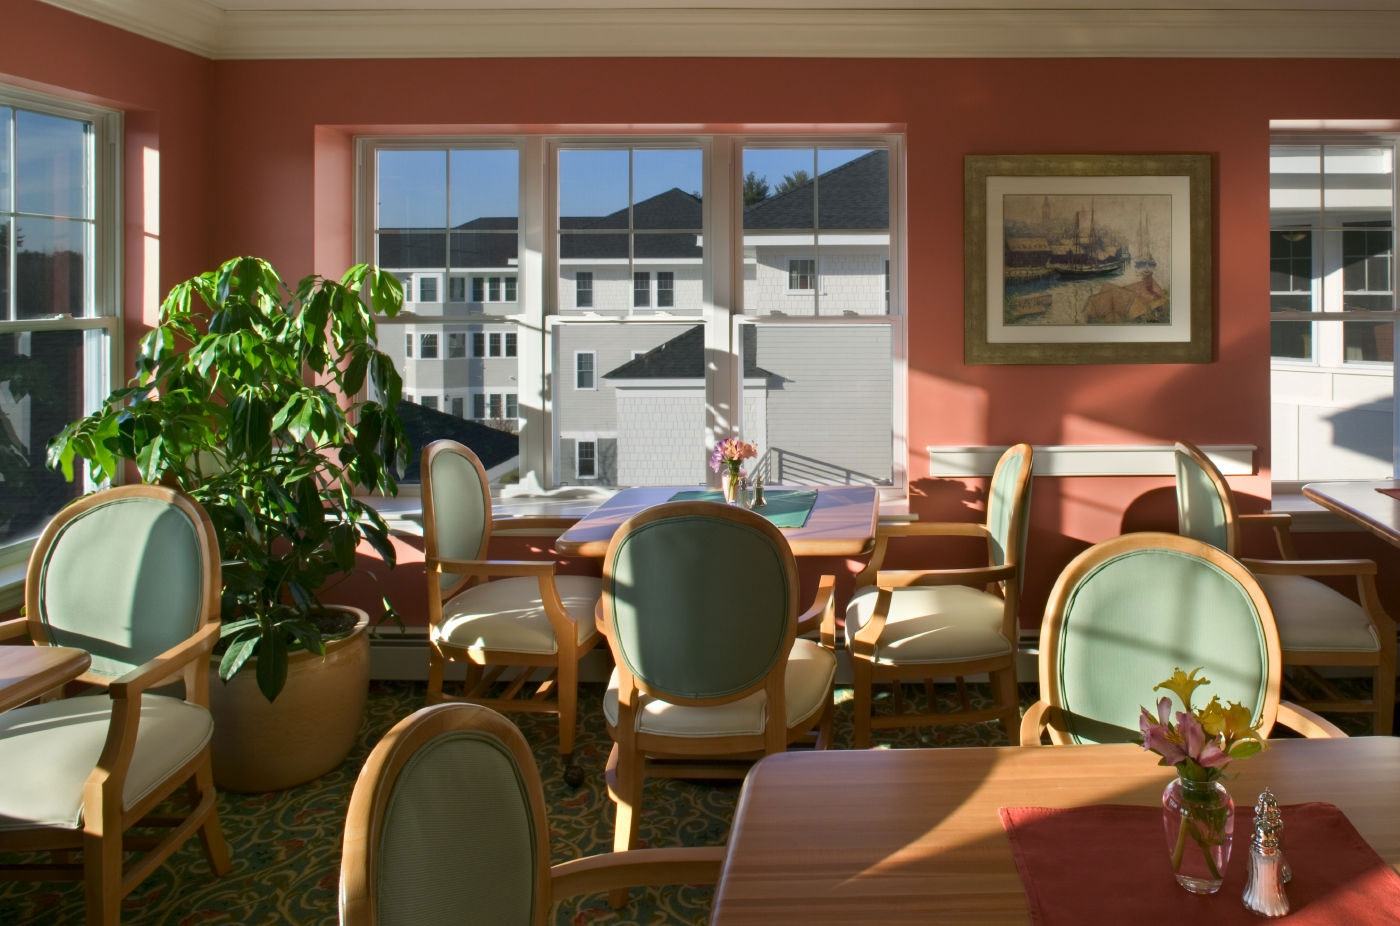 Sun-drenched dining area designed for seniors living in this NH CCRC